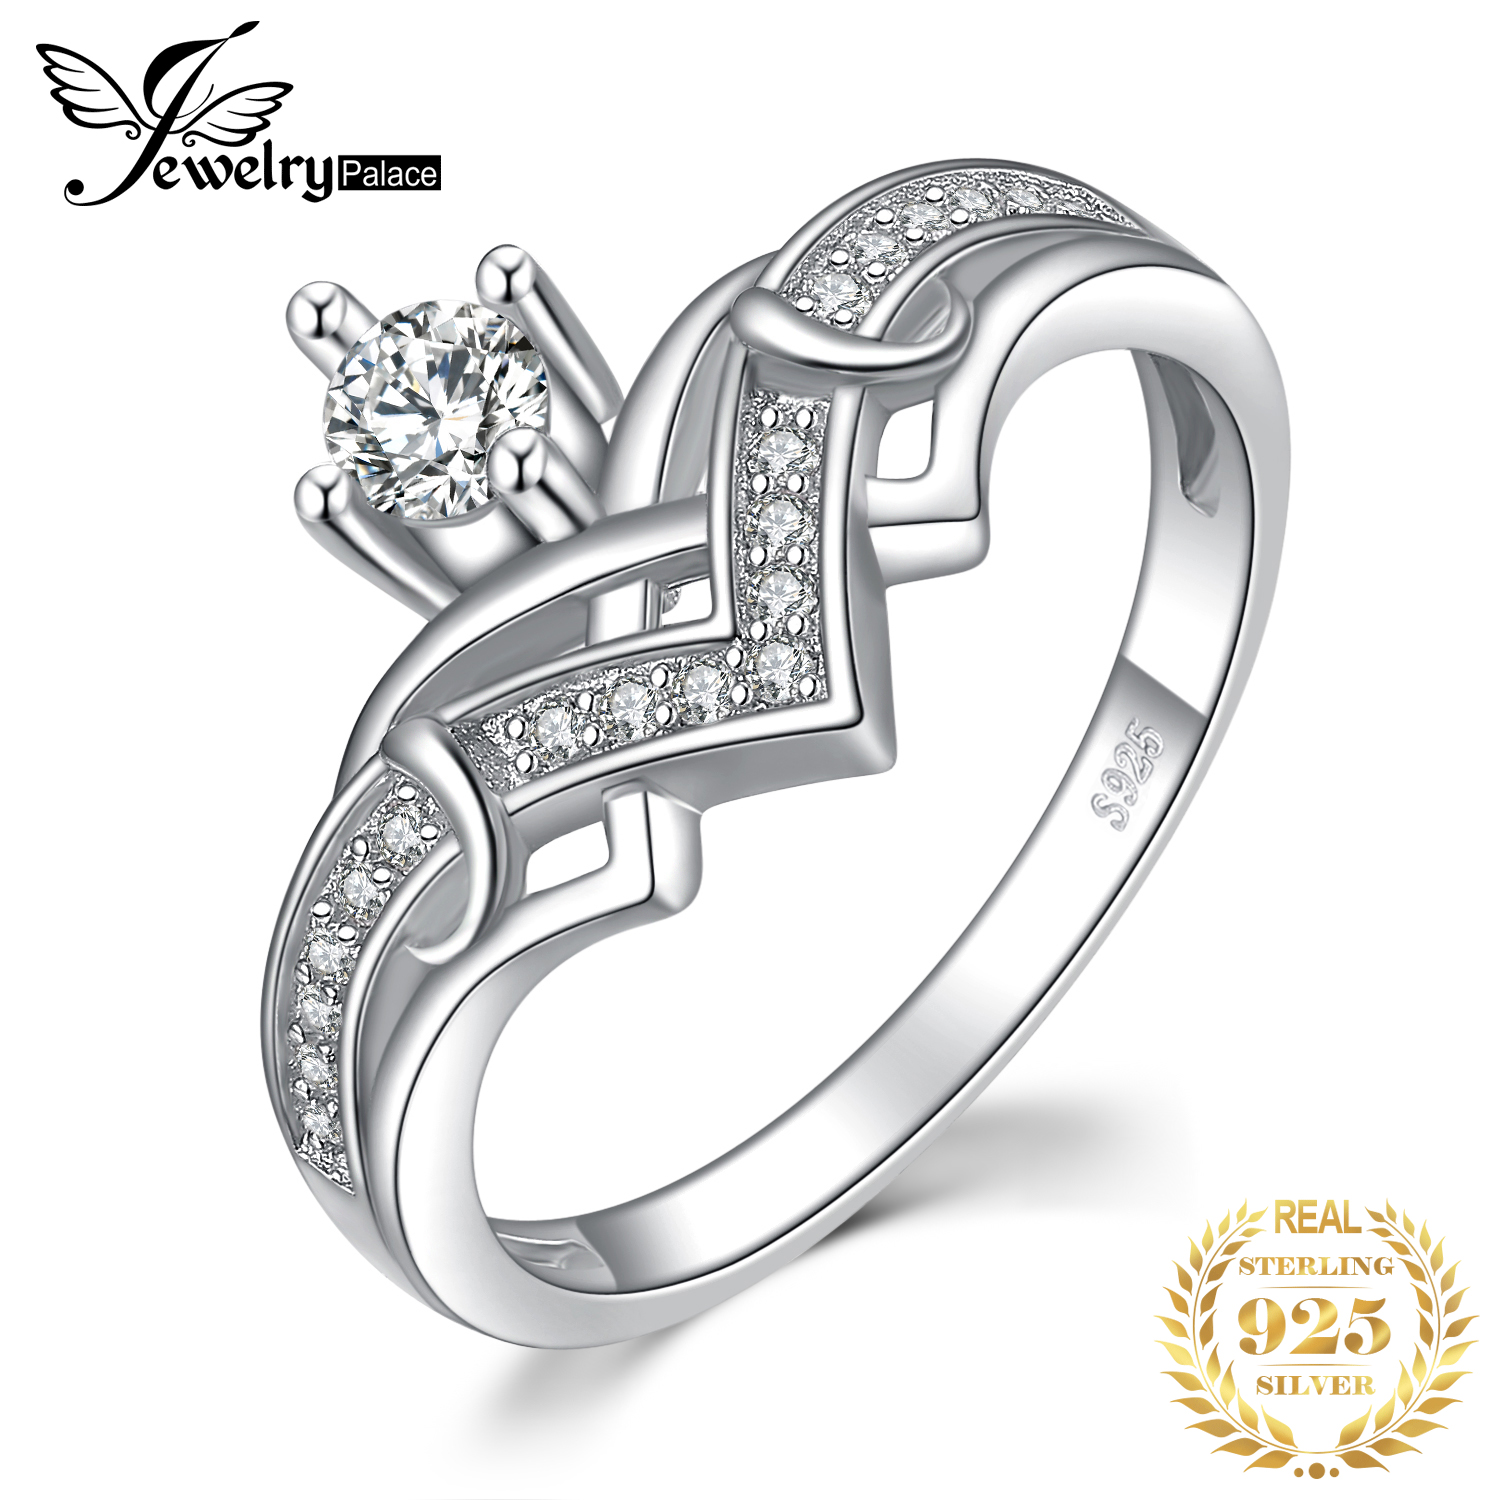 JewelryPalace Heart Princess Crown Cubic Zirconia Anniversary Promise Engagement Ring 925 Sterling Silver